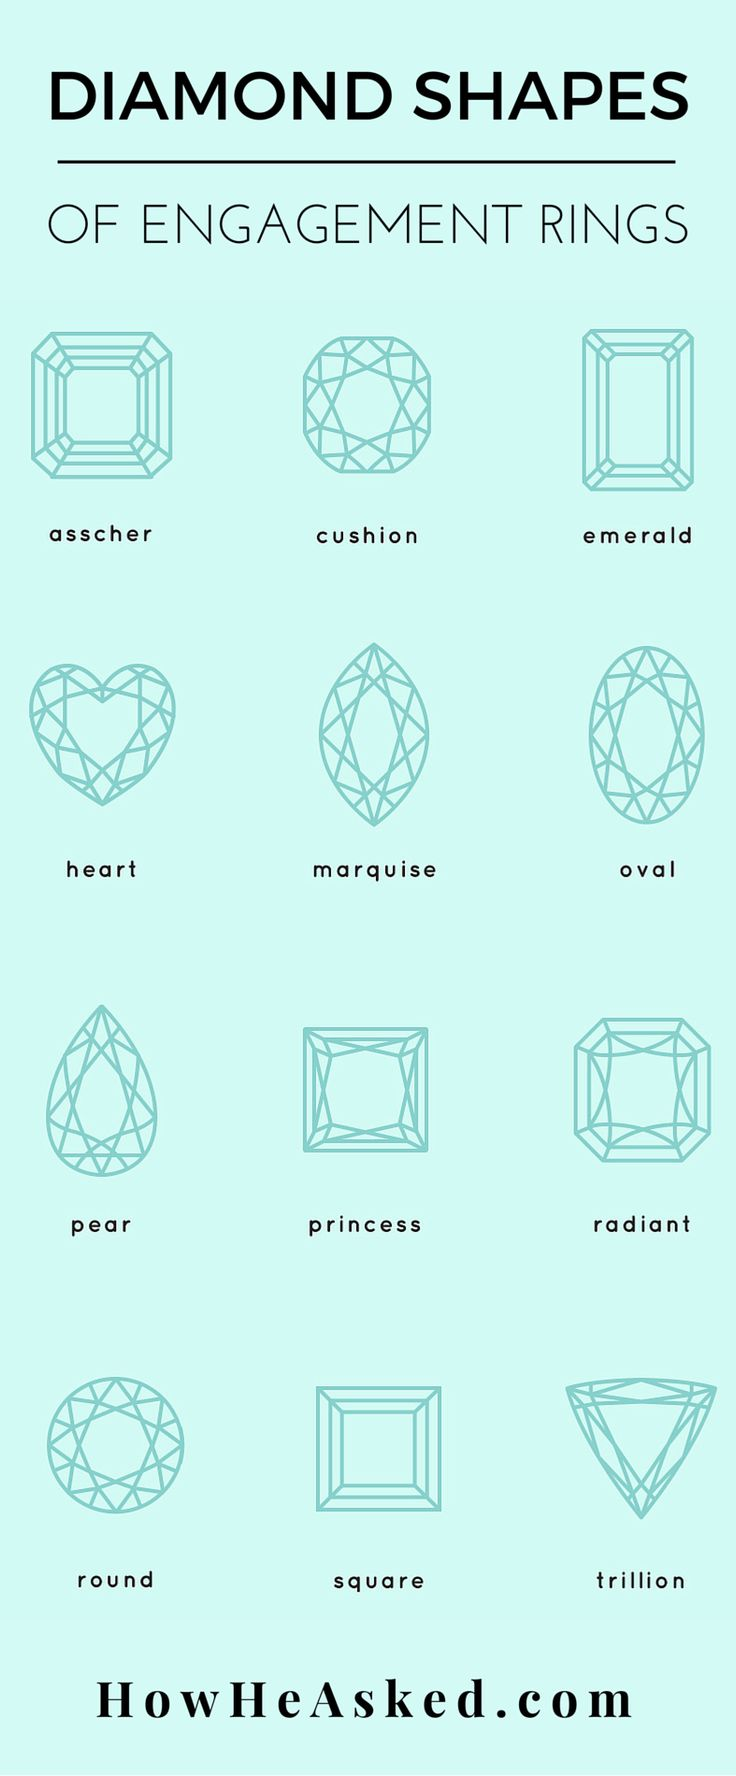 Diamond shapes for engagement rings!